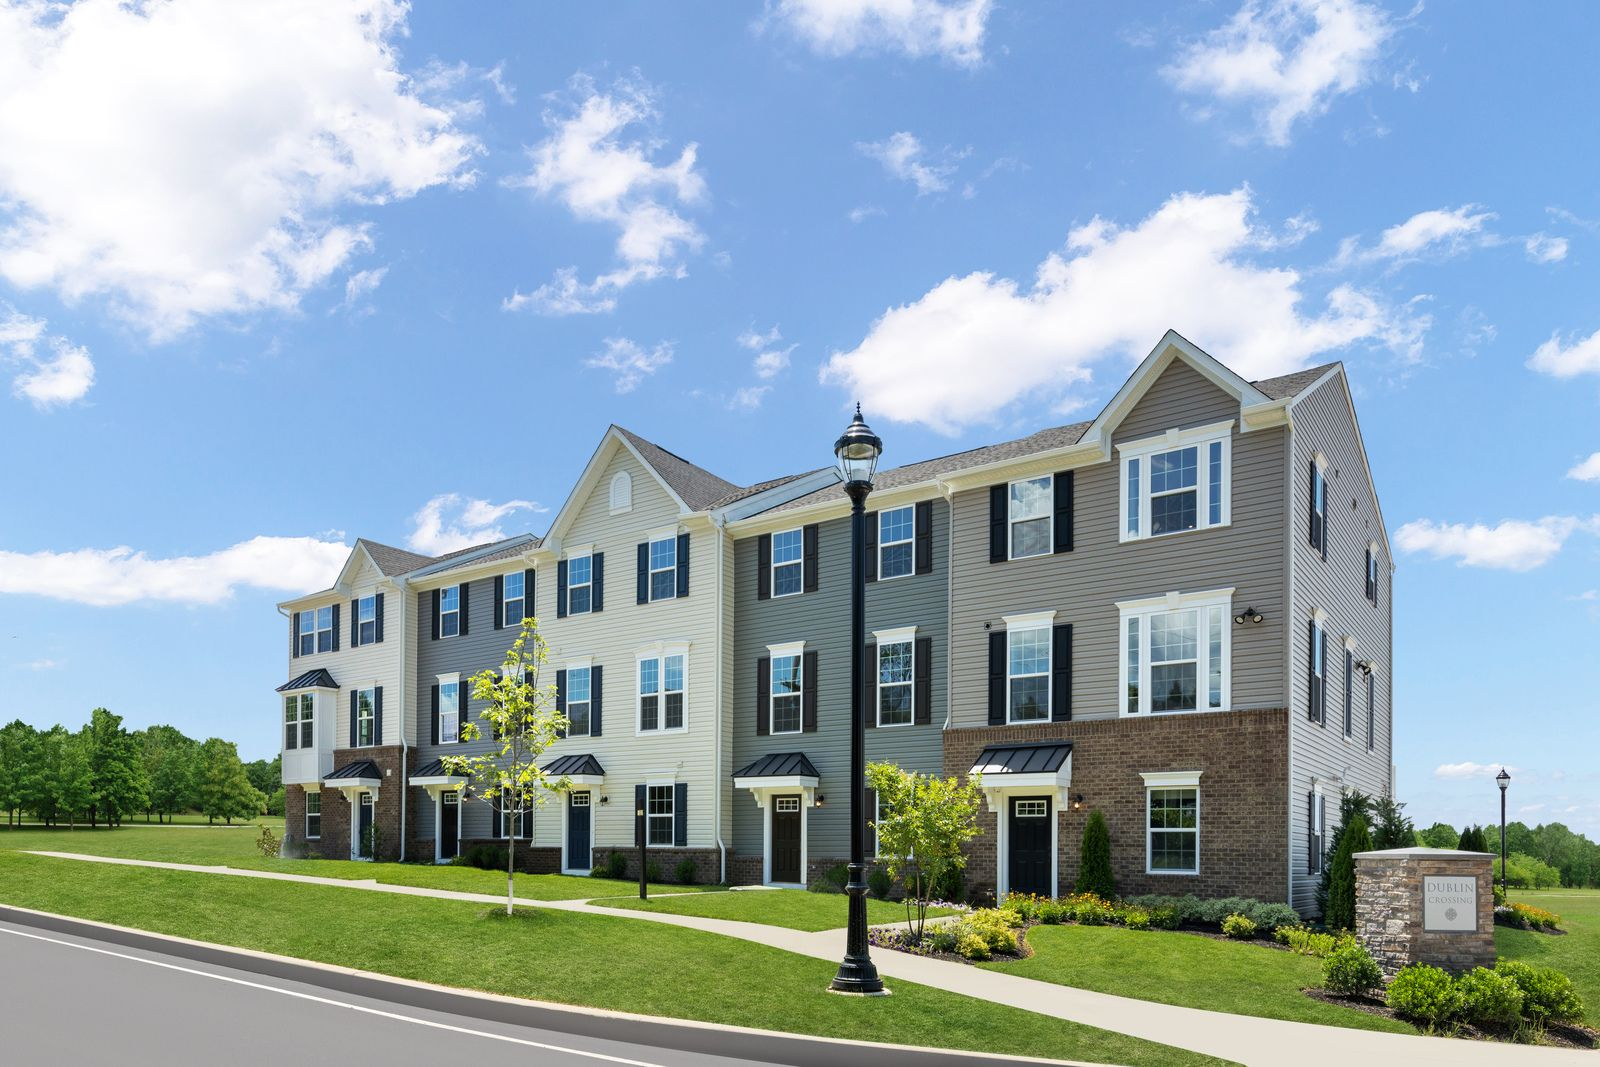 WELCOME TO DUBLIN CROSSING:The only new townhomes with 1- and 2-car garages, in Dublin Town Center with shopping, dining and fitness, minutes to Doylestown. Click here to schedule your appointment today!